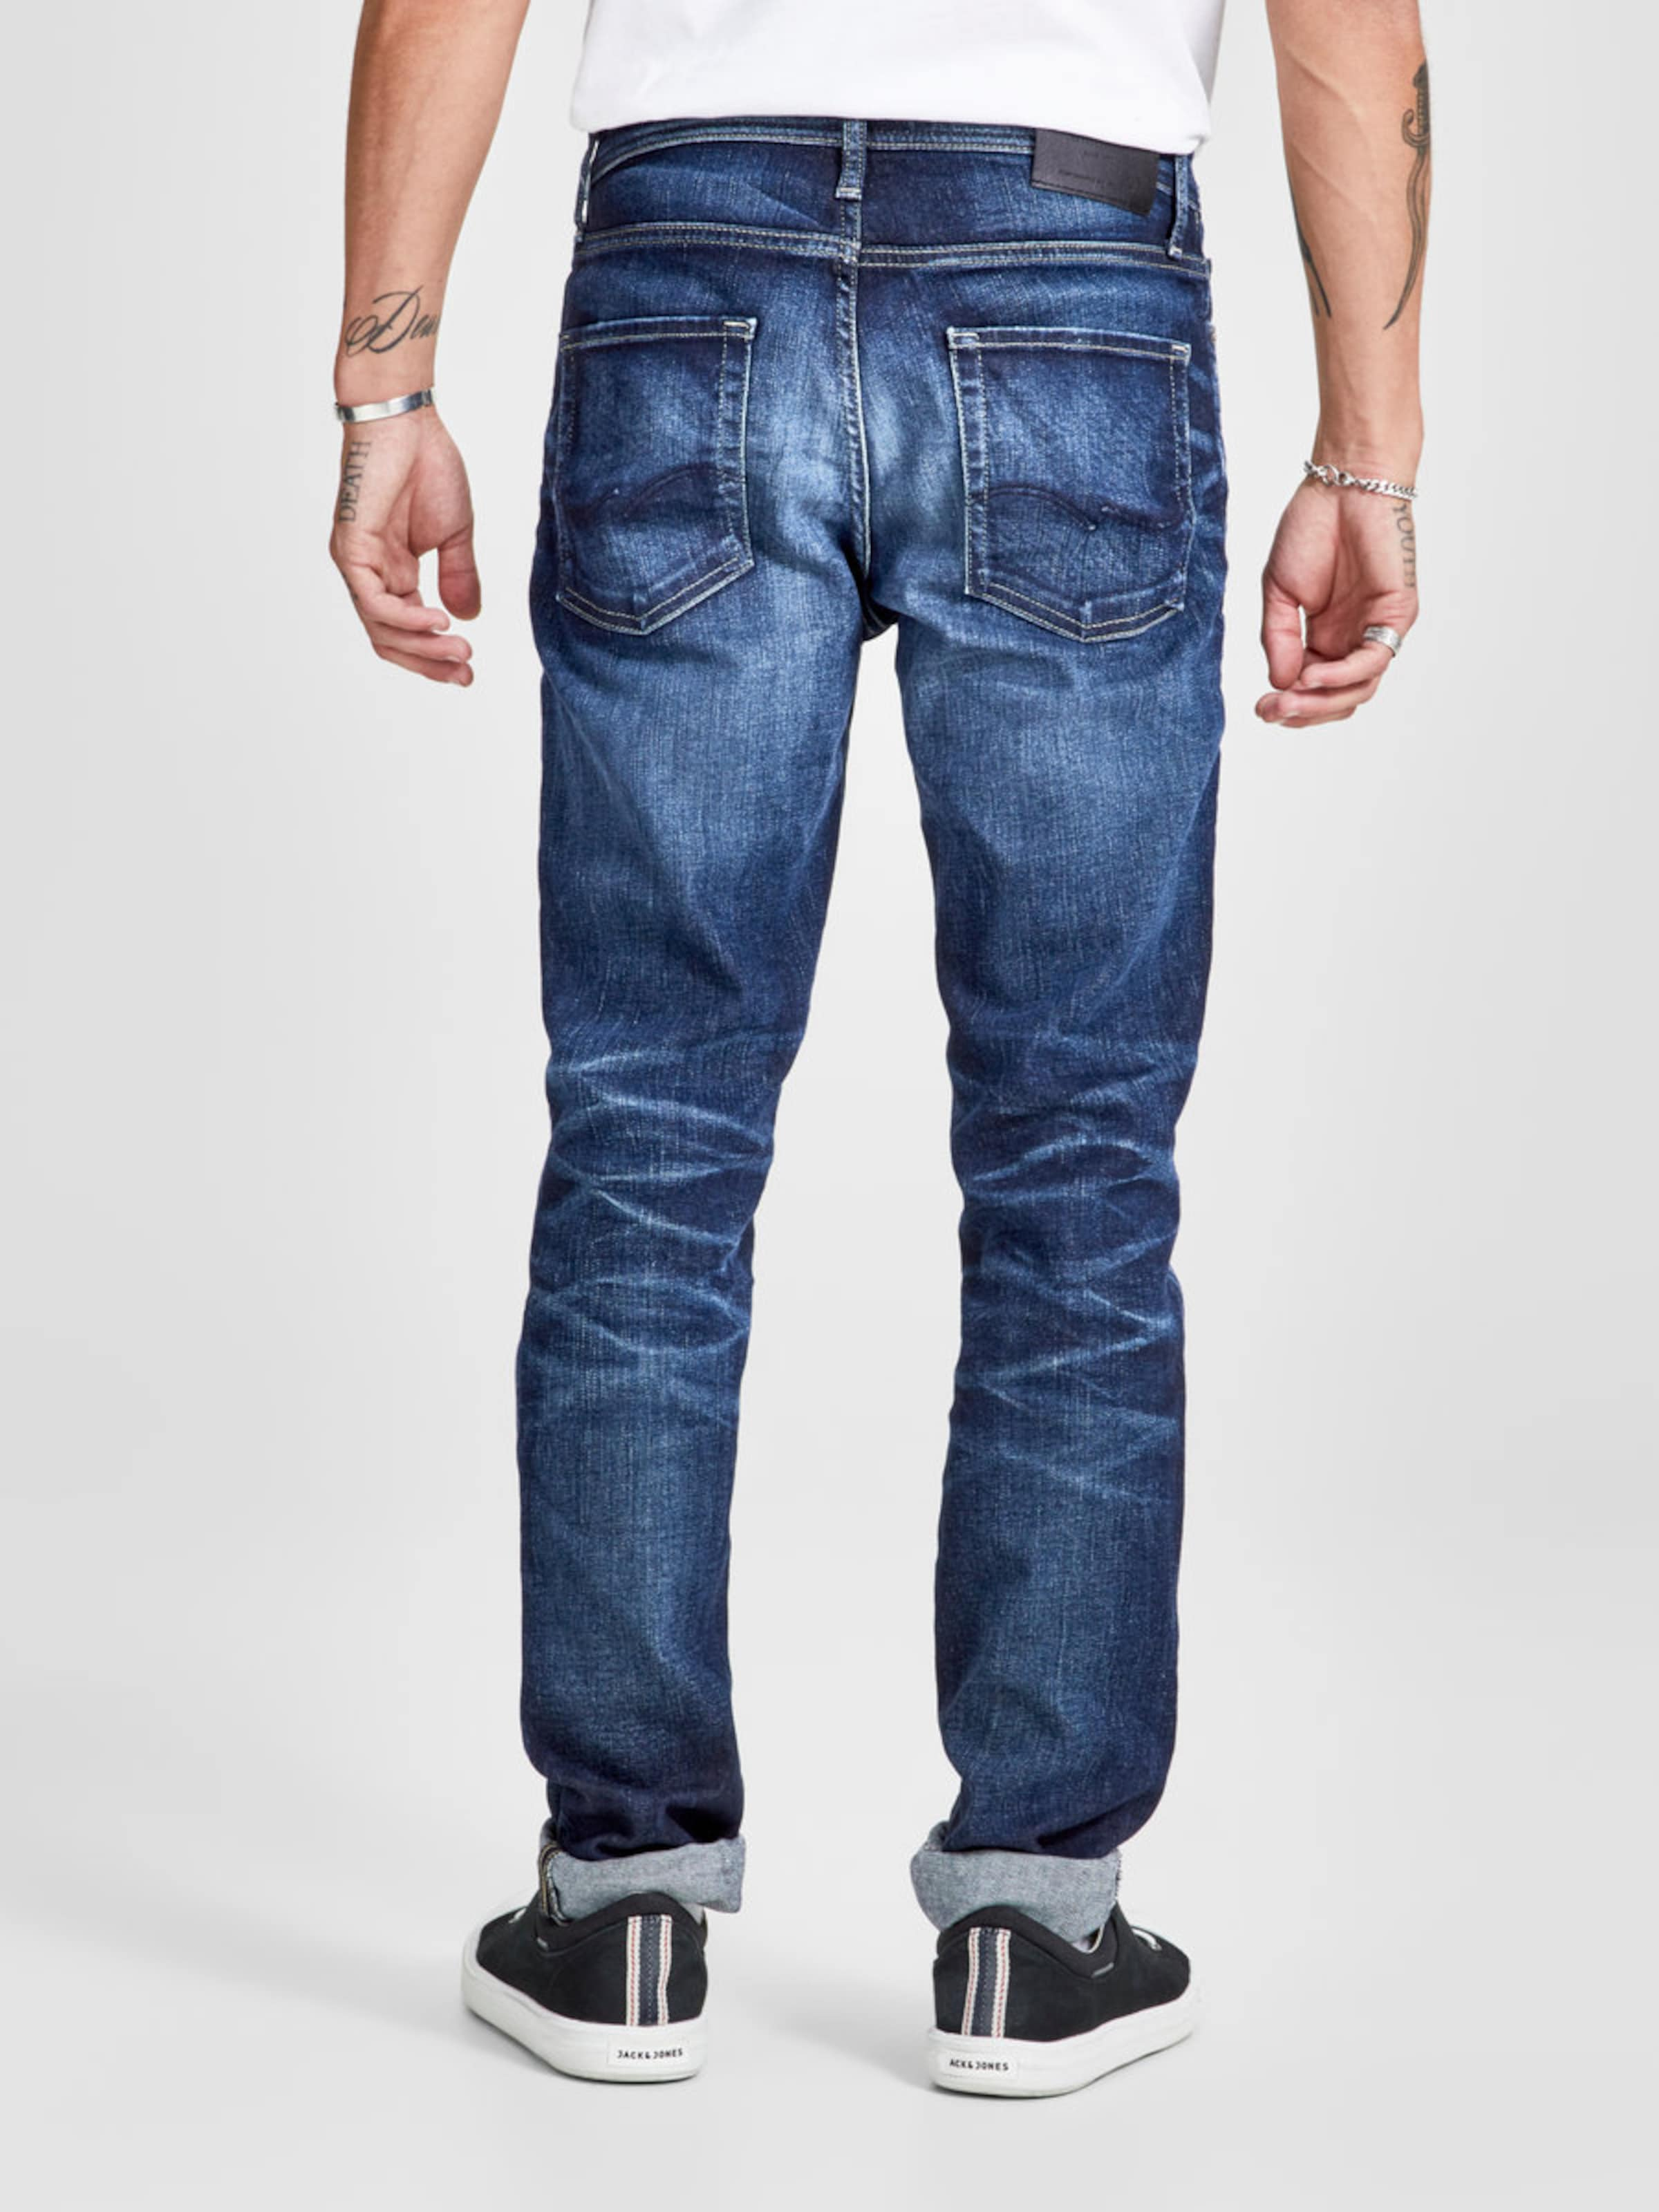 Jones In Jackamp; Noos' Denim Jeans Jj Original 'tim Blue 119 hQdtxCrs